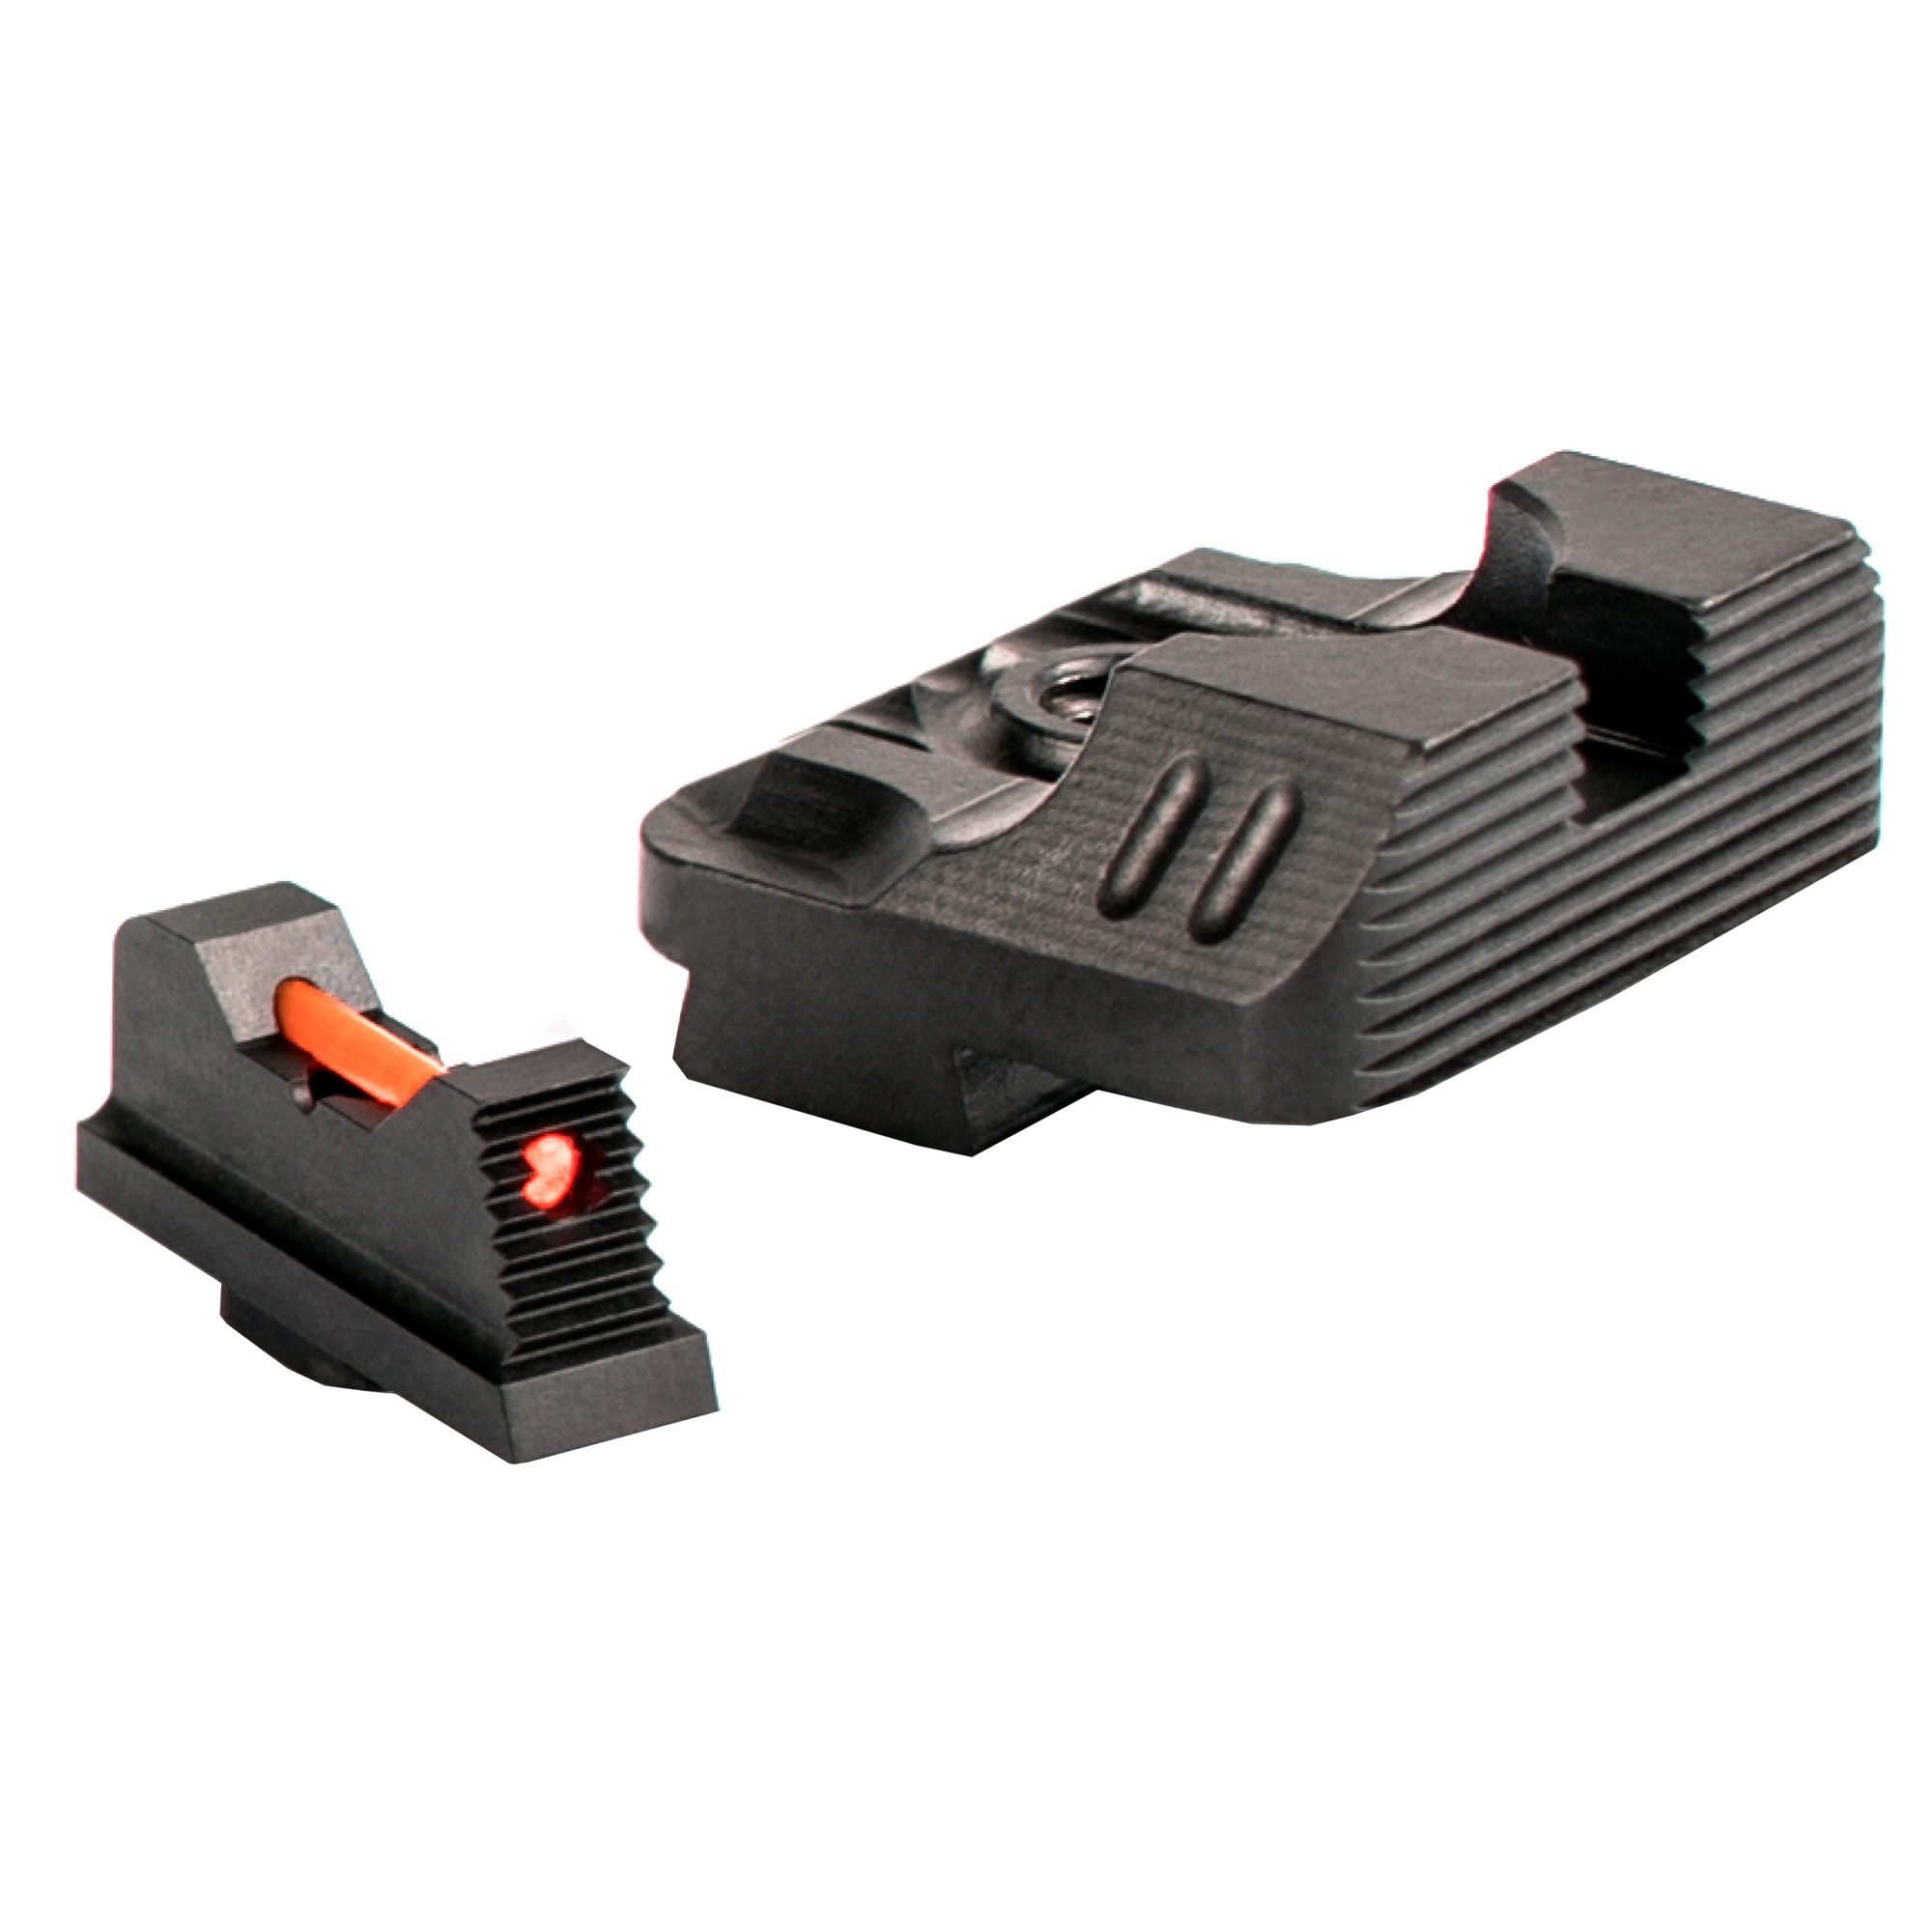 These fiber optic sight sets are an inexpensive addition that a Glock owner can make to their firearm. They have the highest resolution and greatest ease of acquisition. The higher visibility will allow you to keep your sights on target.